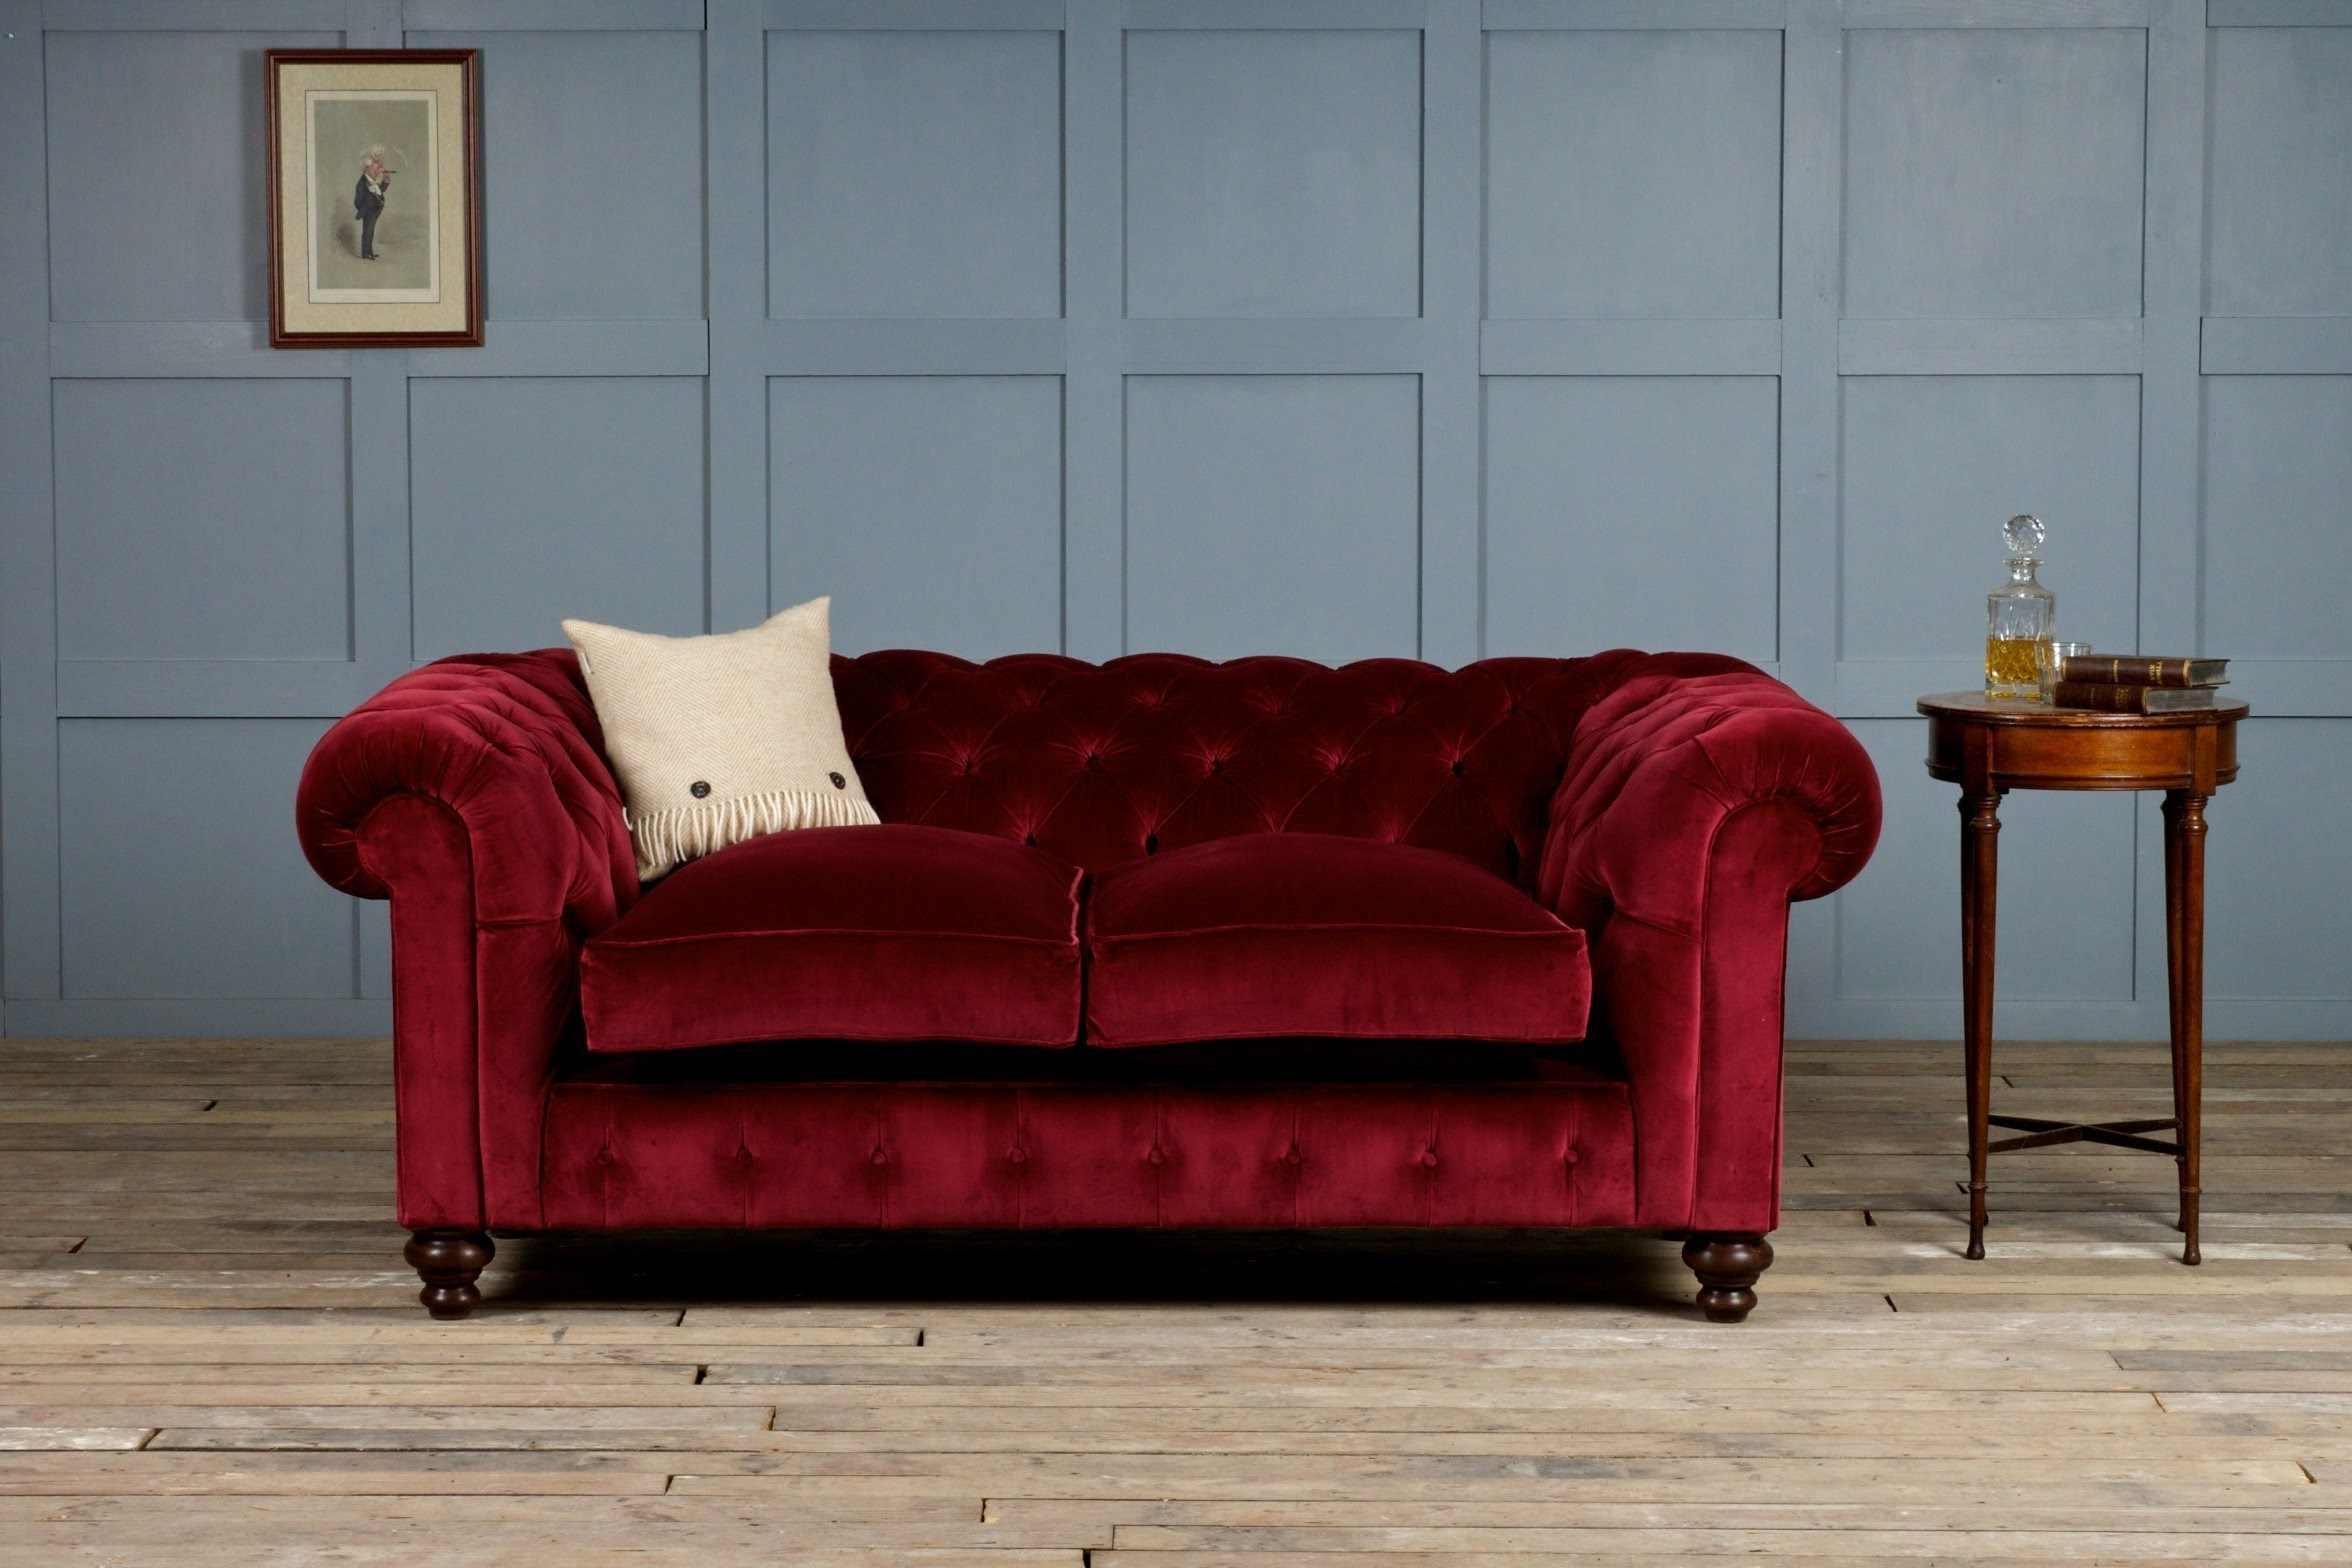 Velvet Sofas for Latest Velvet Sofa - Youtube